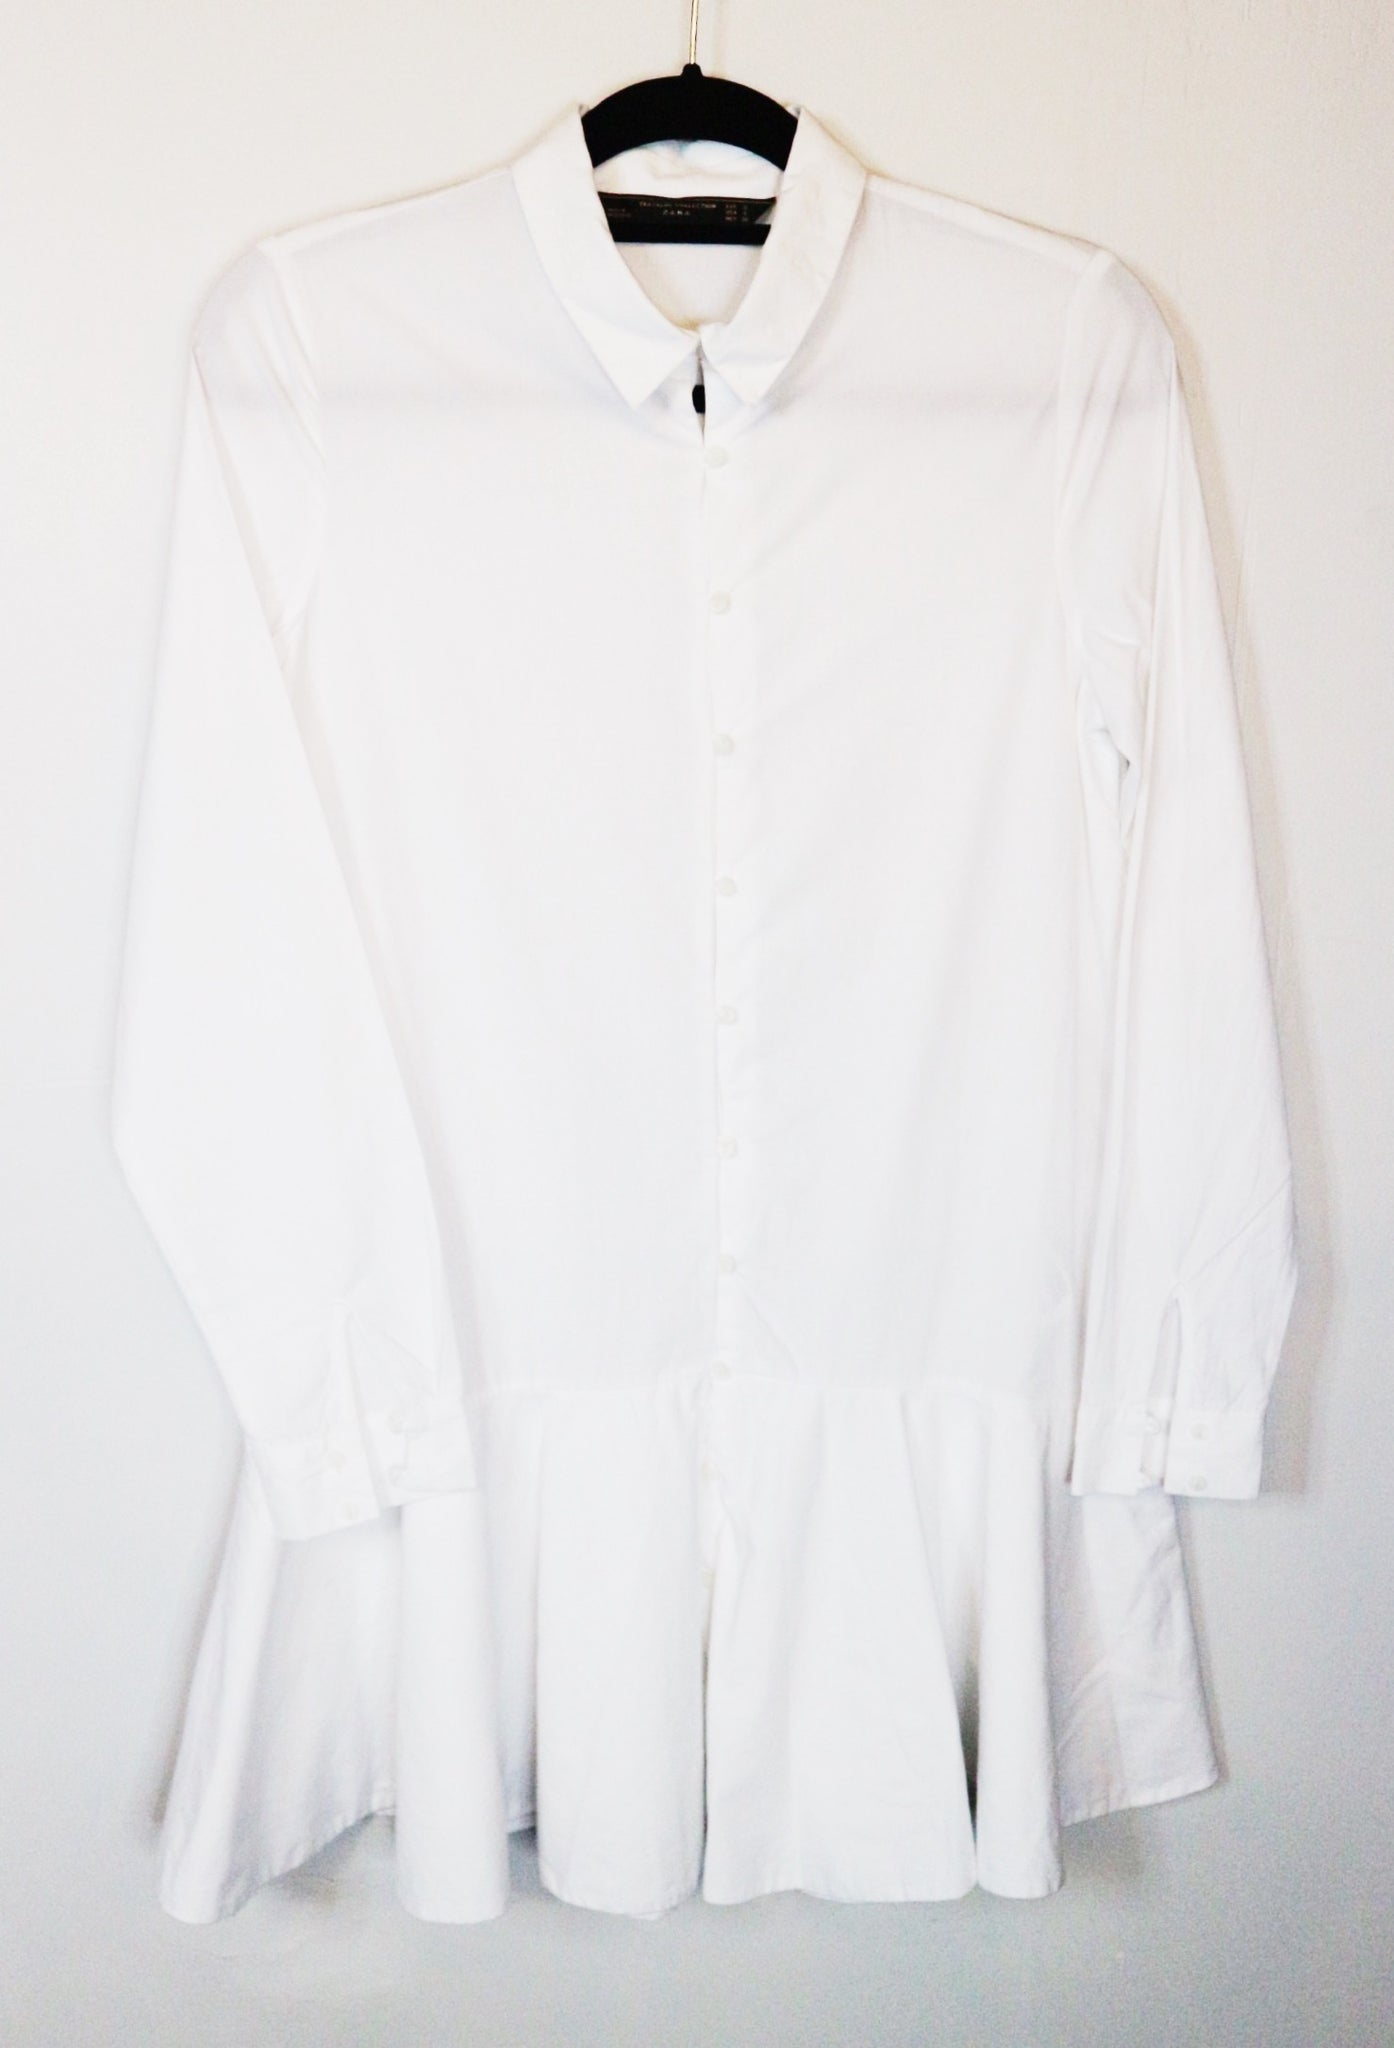 Zara white button down shirt dress